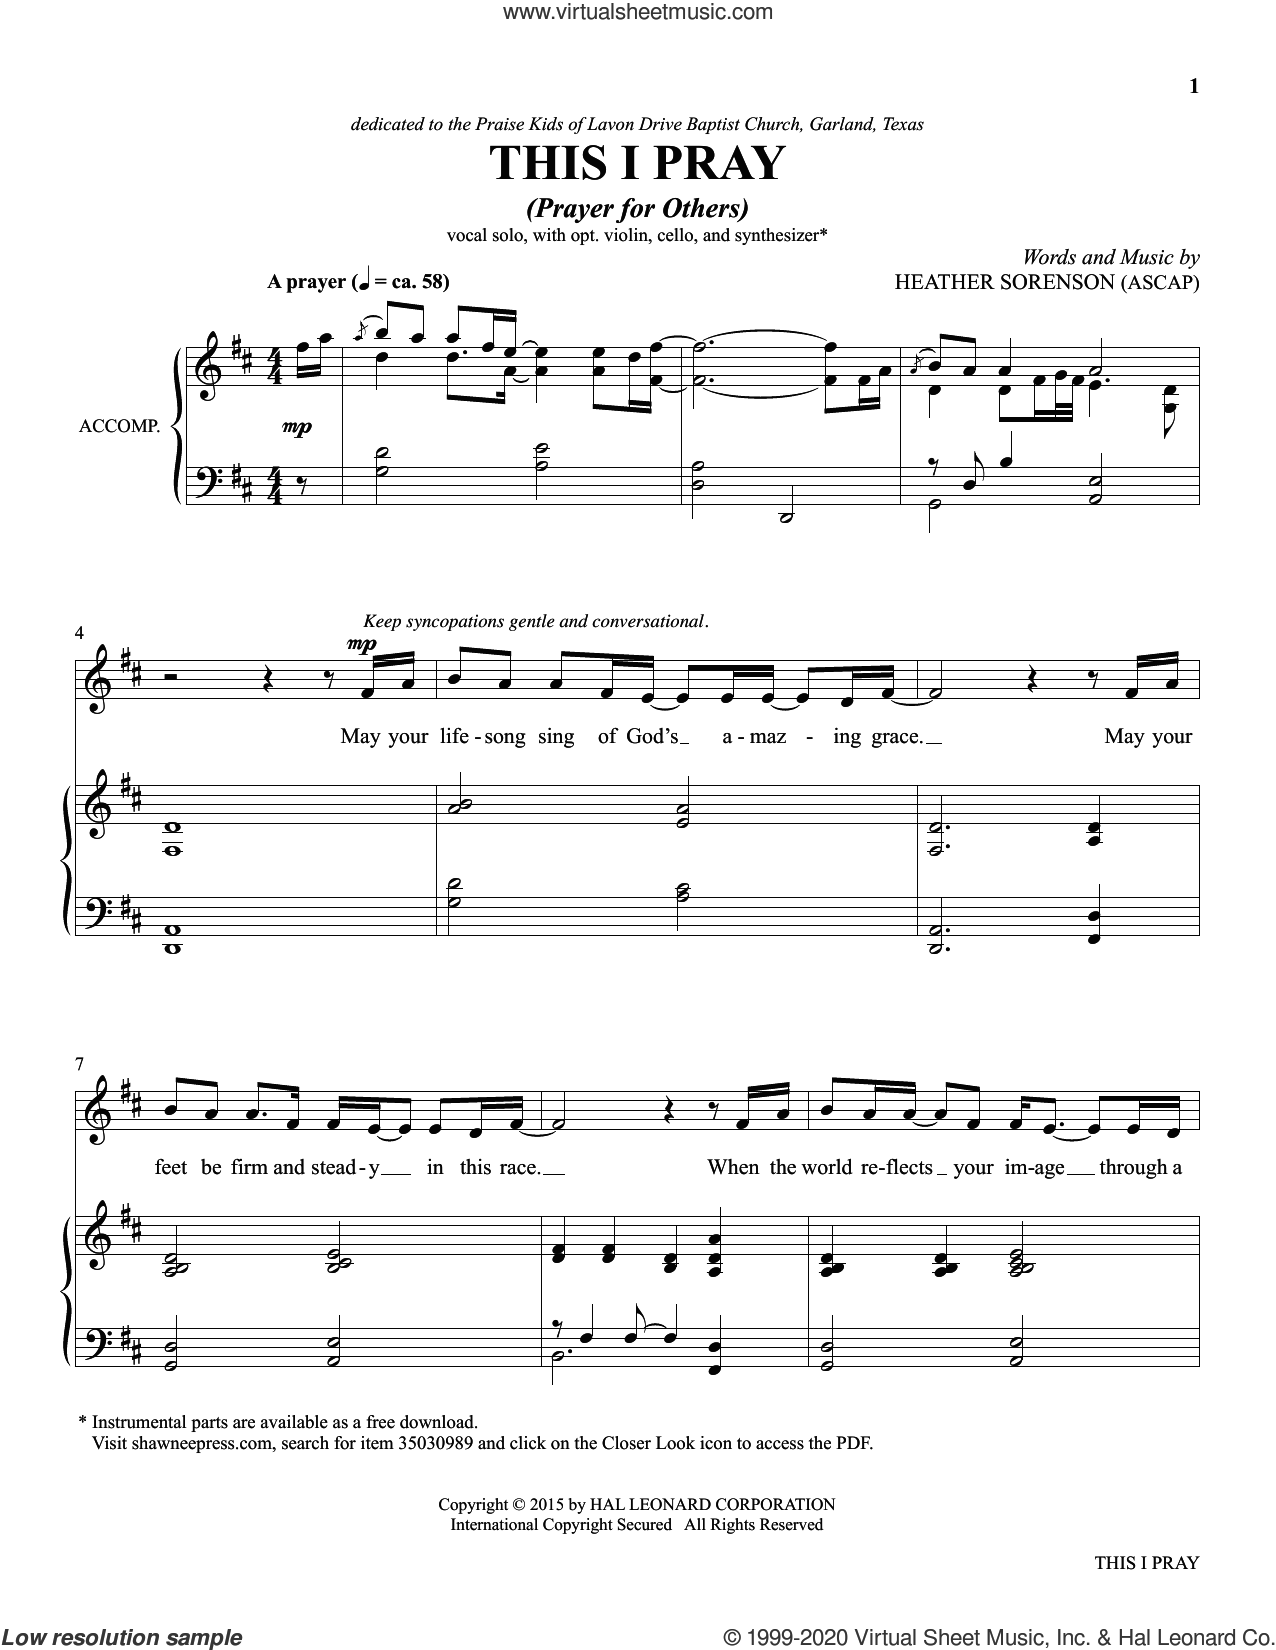 This I Pray (from The Prayer Project) sheet music for voice and piano by Heather Sorenson, intermediate skill level